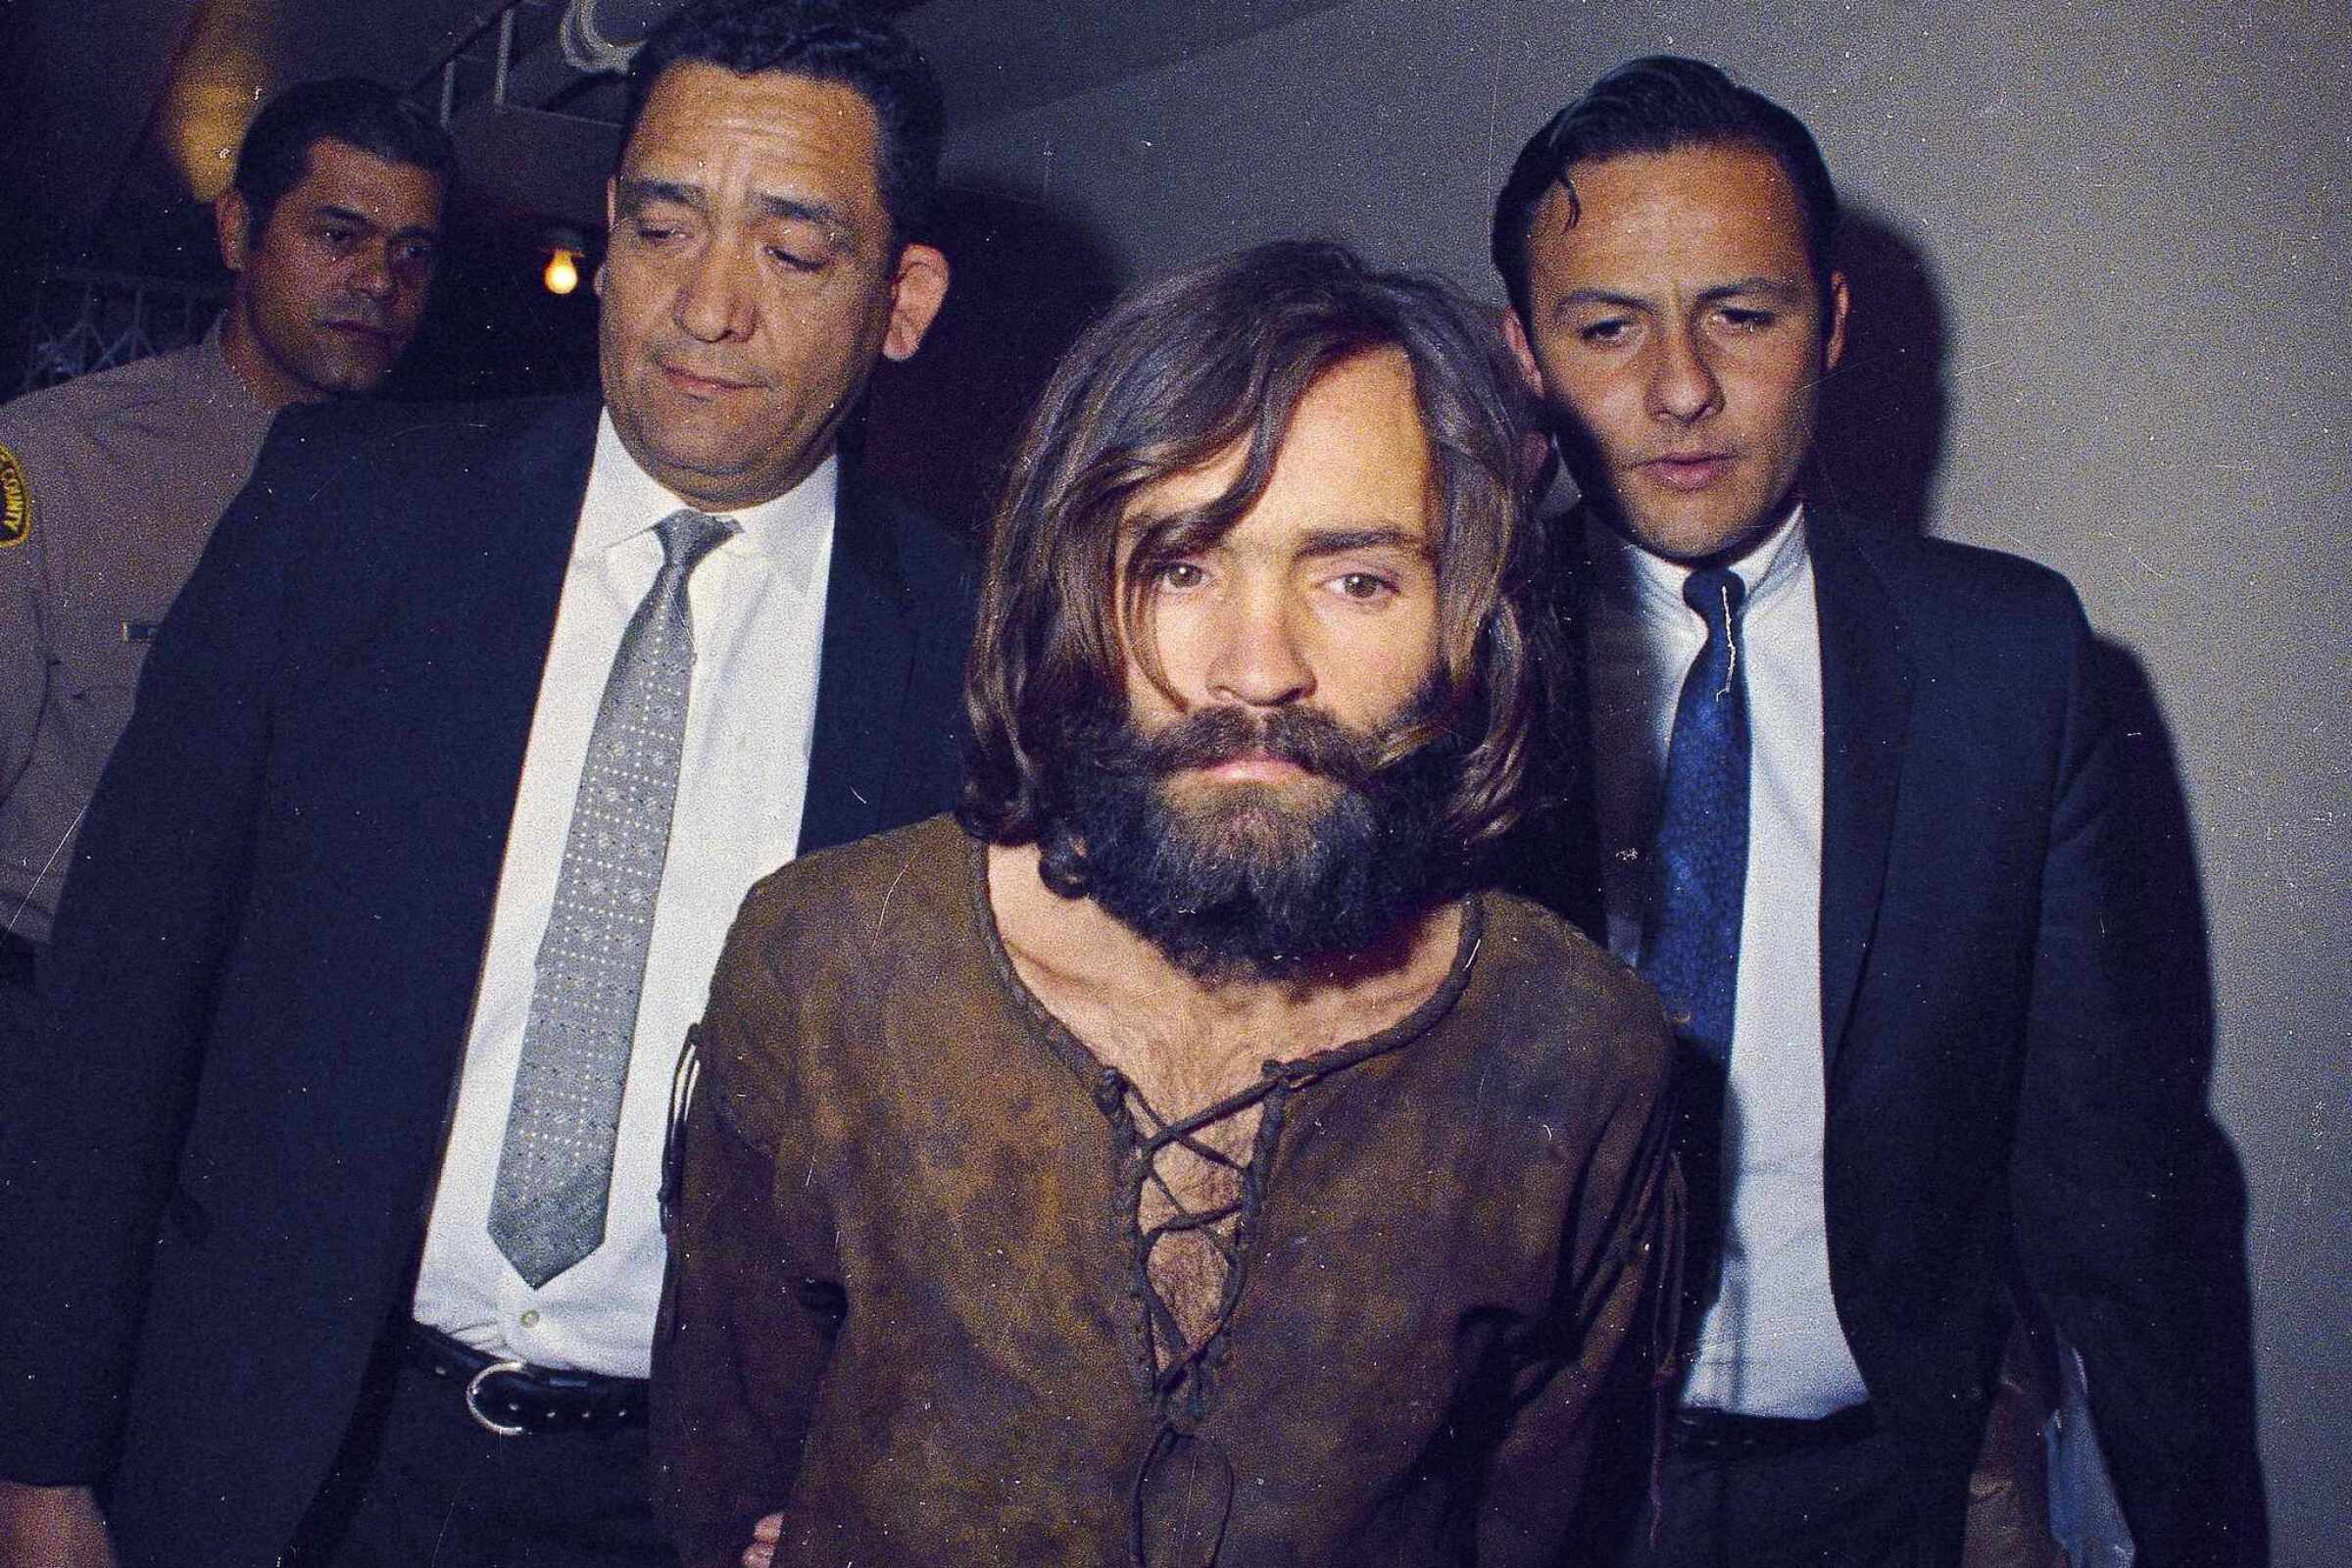 Charles Manson escorted to arraignment